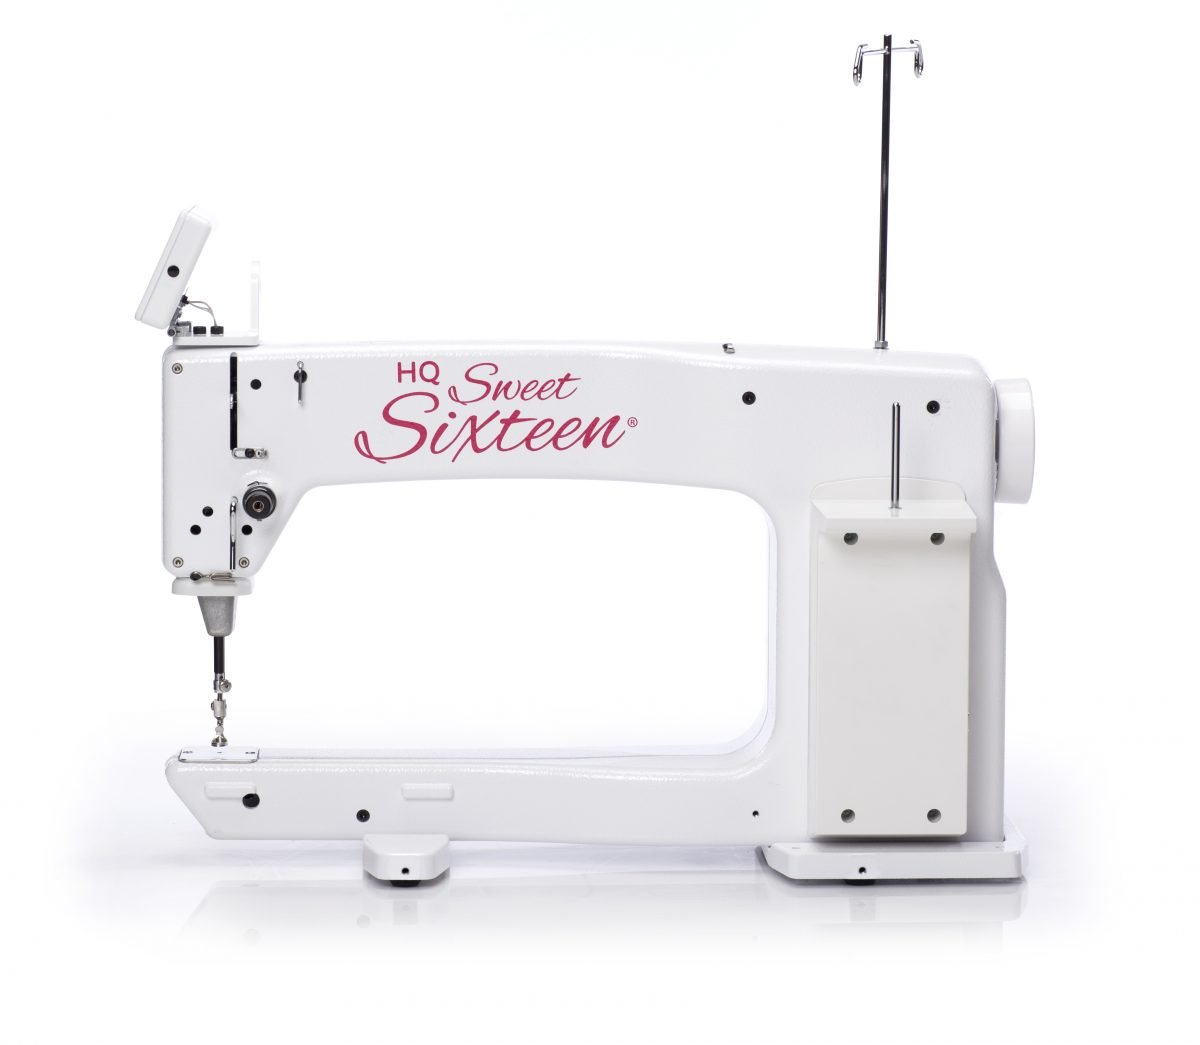 HQ Sweet Sixteen 16 Stationary with InSight Stitch Regulation Table